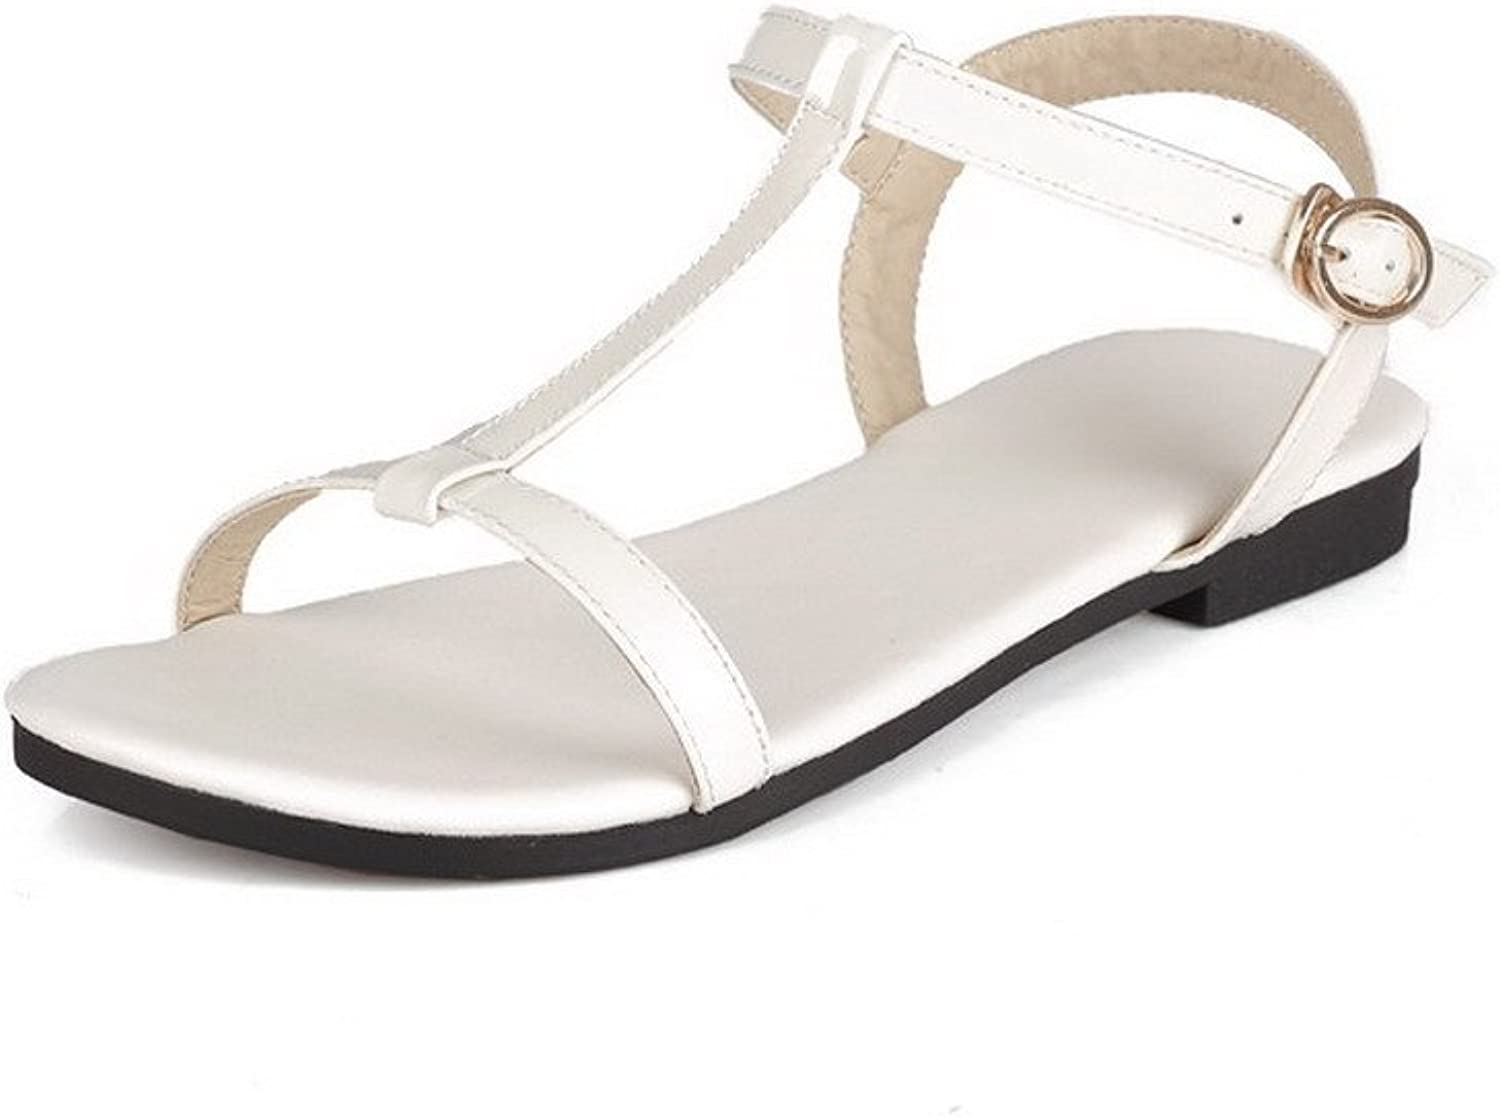 AllhqFashion Women's Cow Leather Solid Buckle Open Toe No-Heel Flats-Sandals